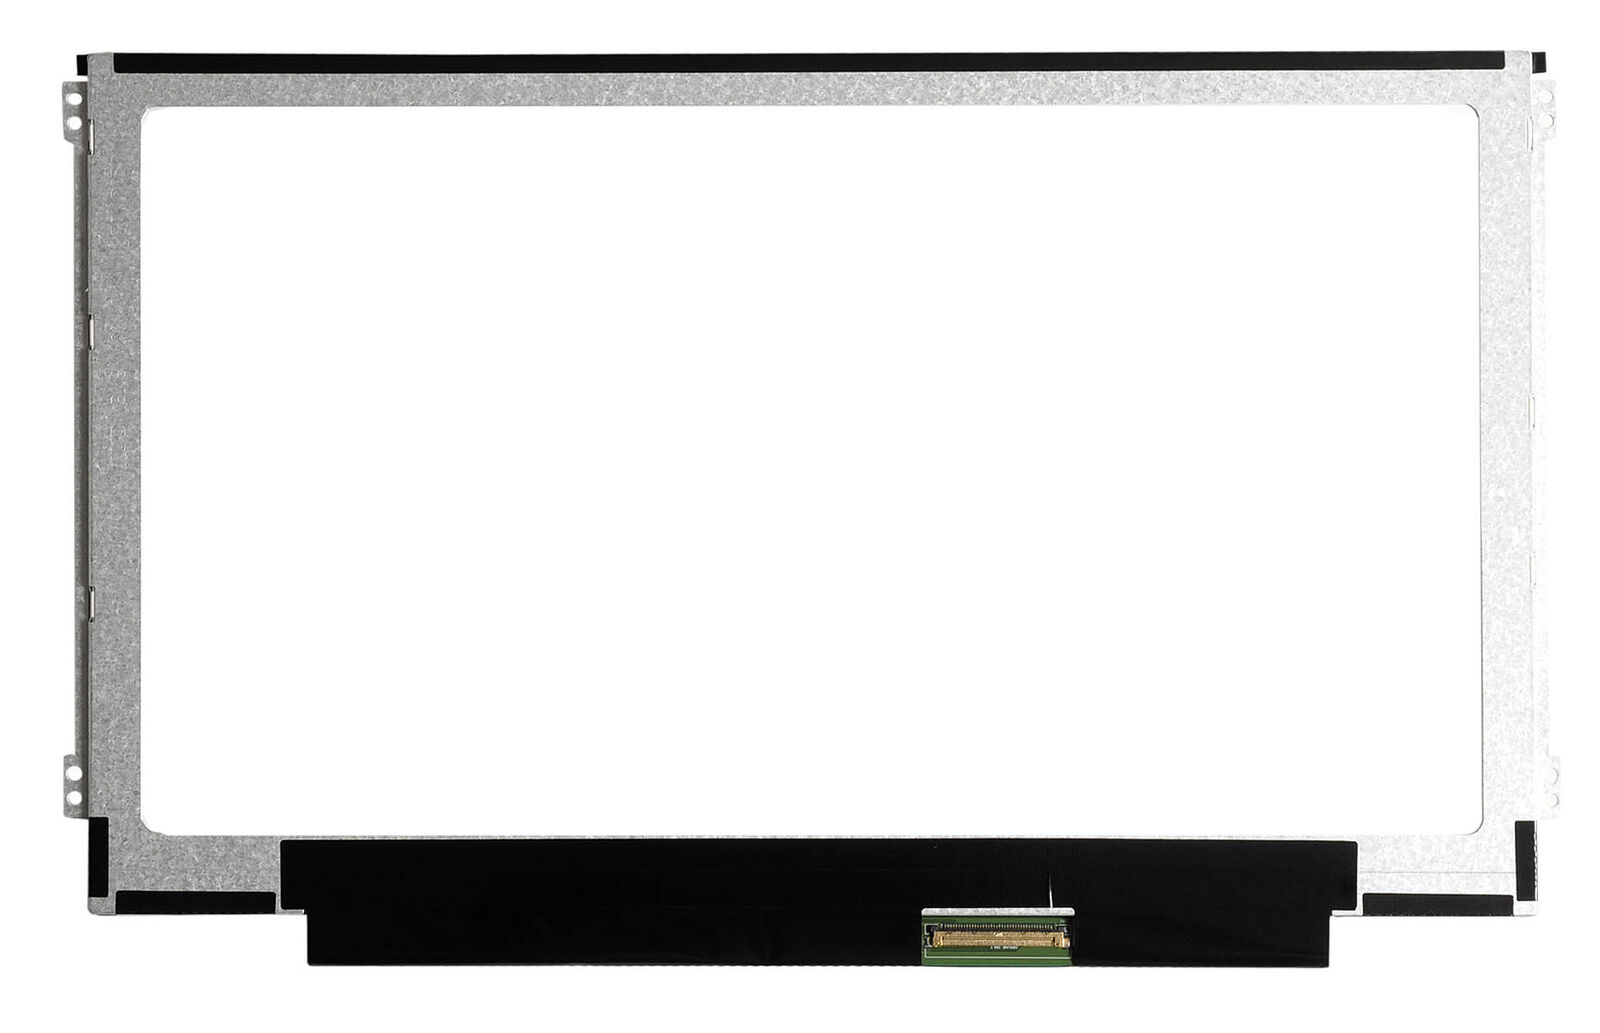 FHD 1920x1080 Matte LCD LED Display with Tools 120Hz Upgrade SCREENARAMA New Screen Replacement for HP Probook 650 G2